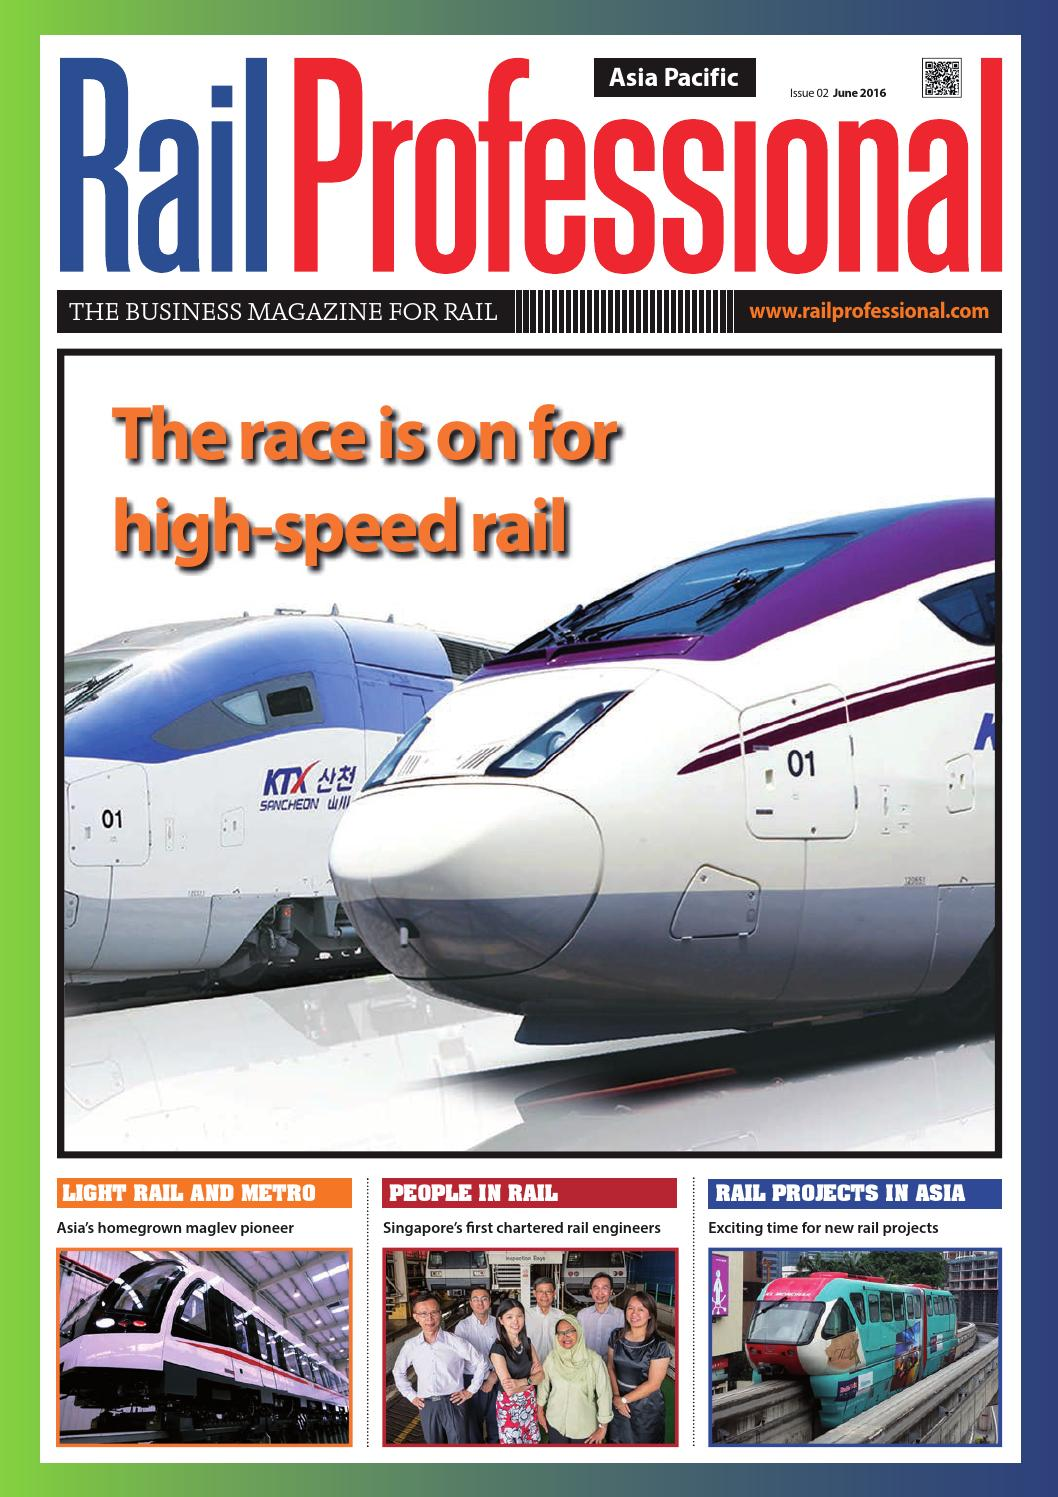 RAIL PROFESSIONAL ASIA PACIFIC - JUNE 2016 by Rail Professional